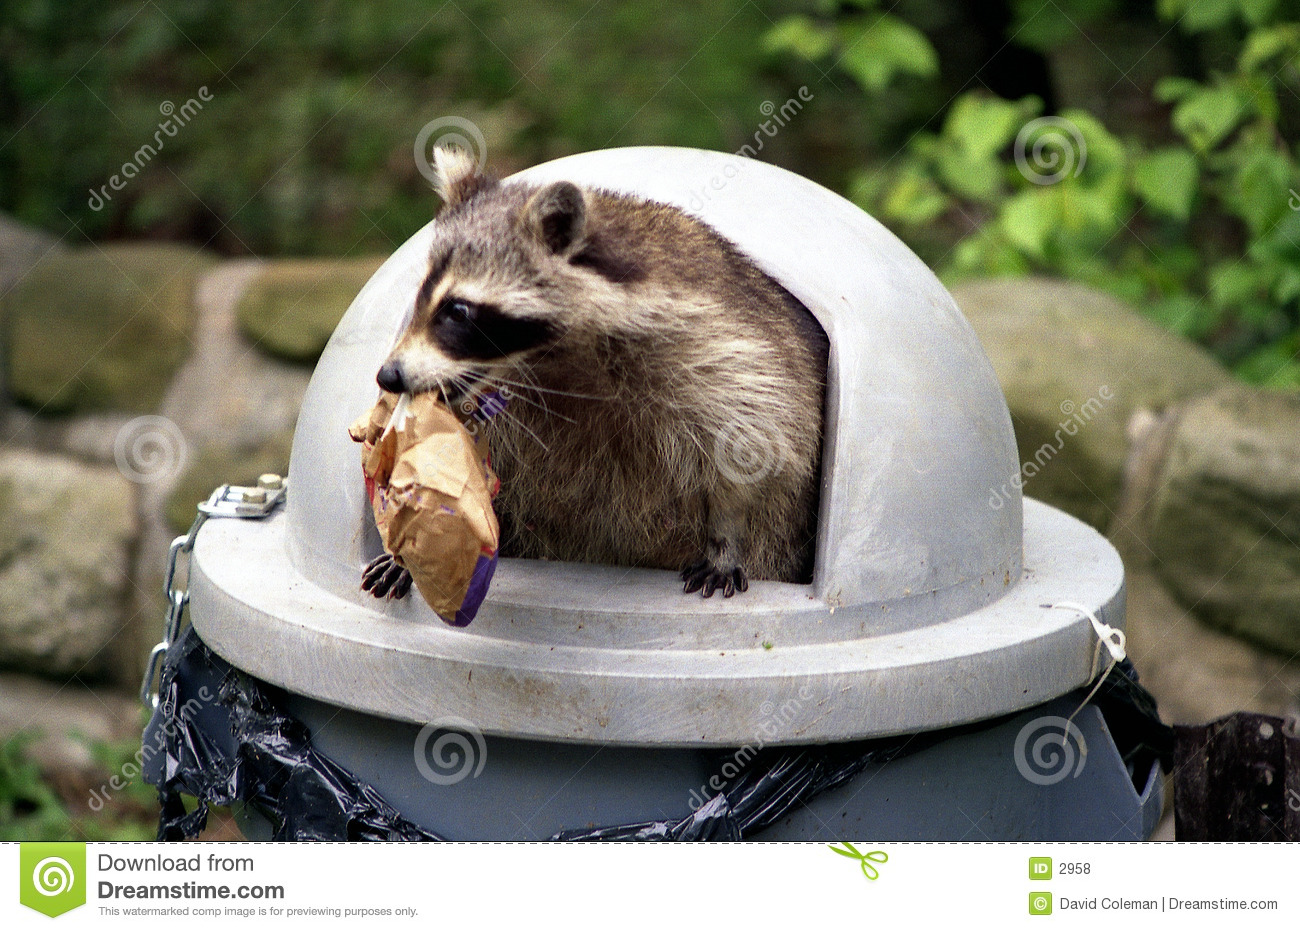 Raccoon raiding trash can.